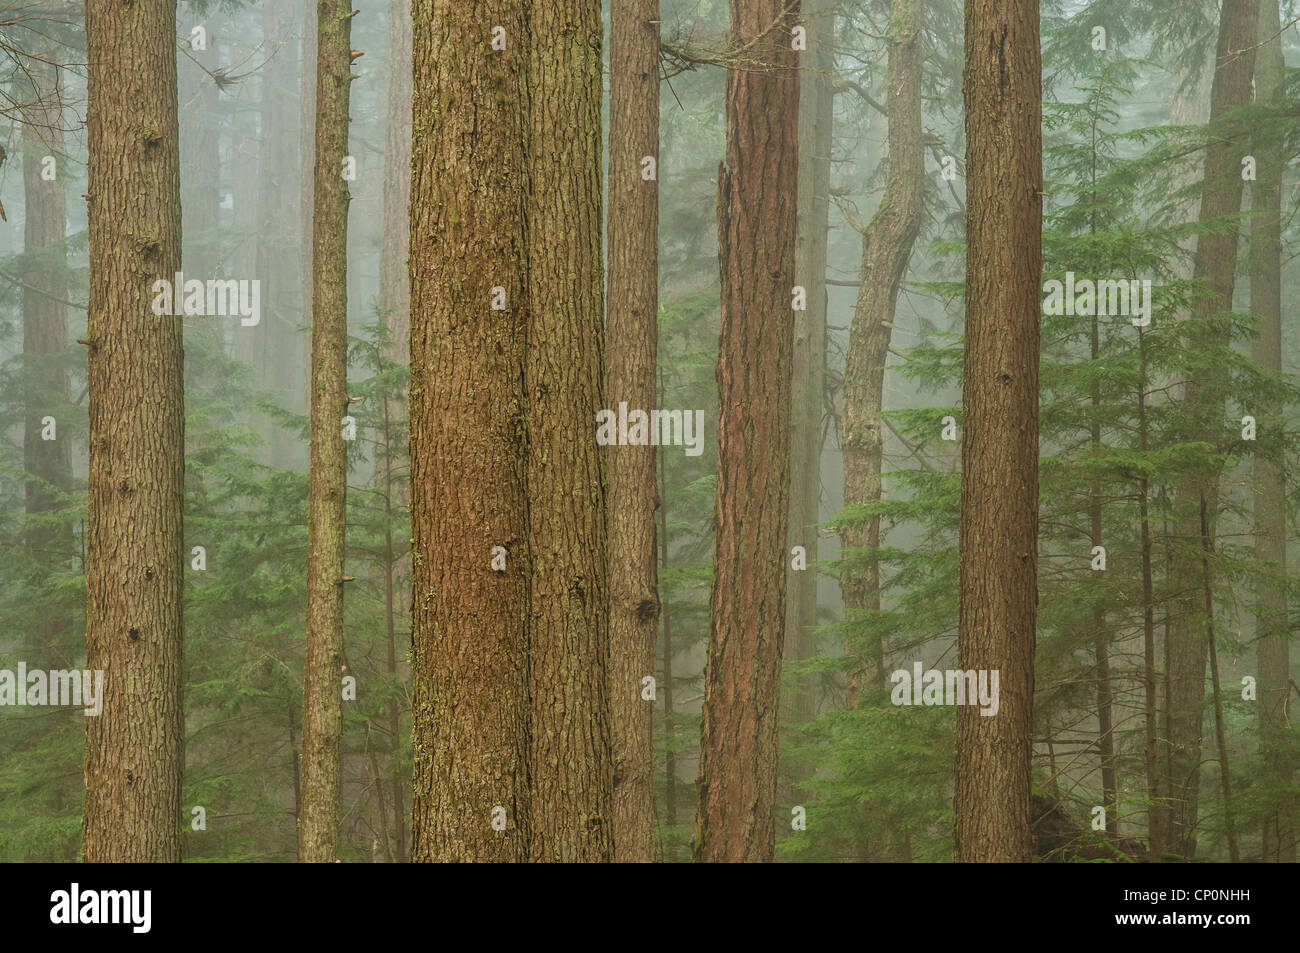 Fog and trees in forest, Mount Constitution, Moran State Park, Orcas Island, Washington. Stock Photo